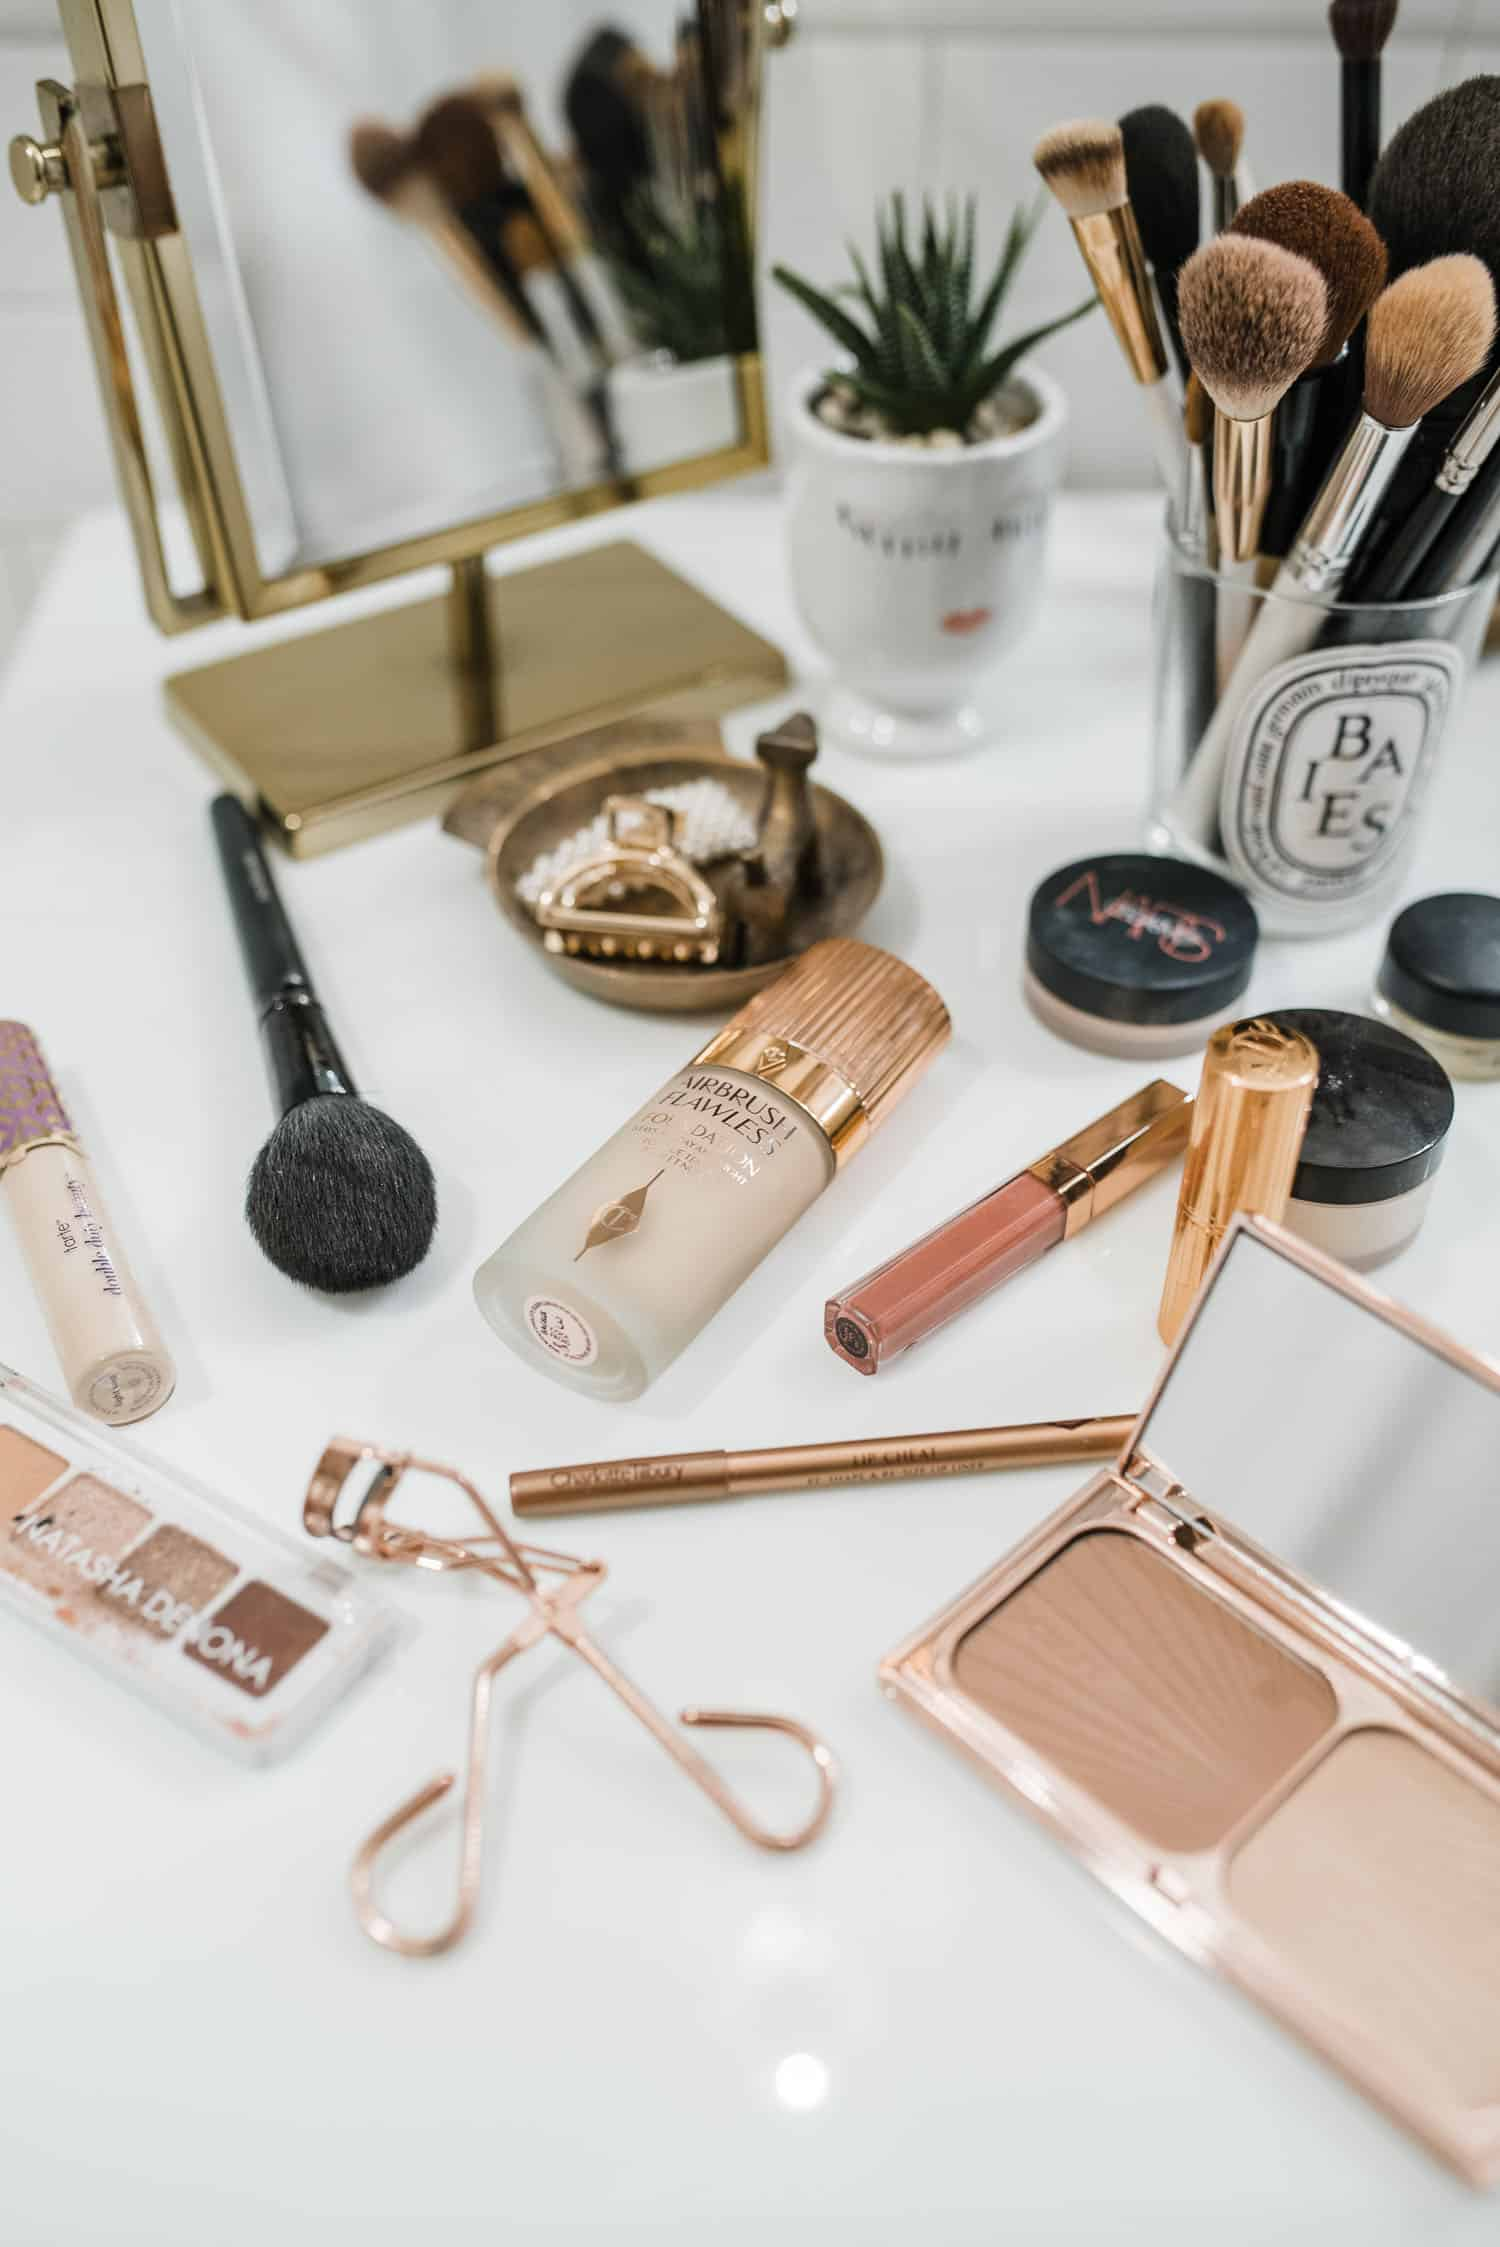 How To Shop The Sephora VIB Sale